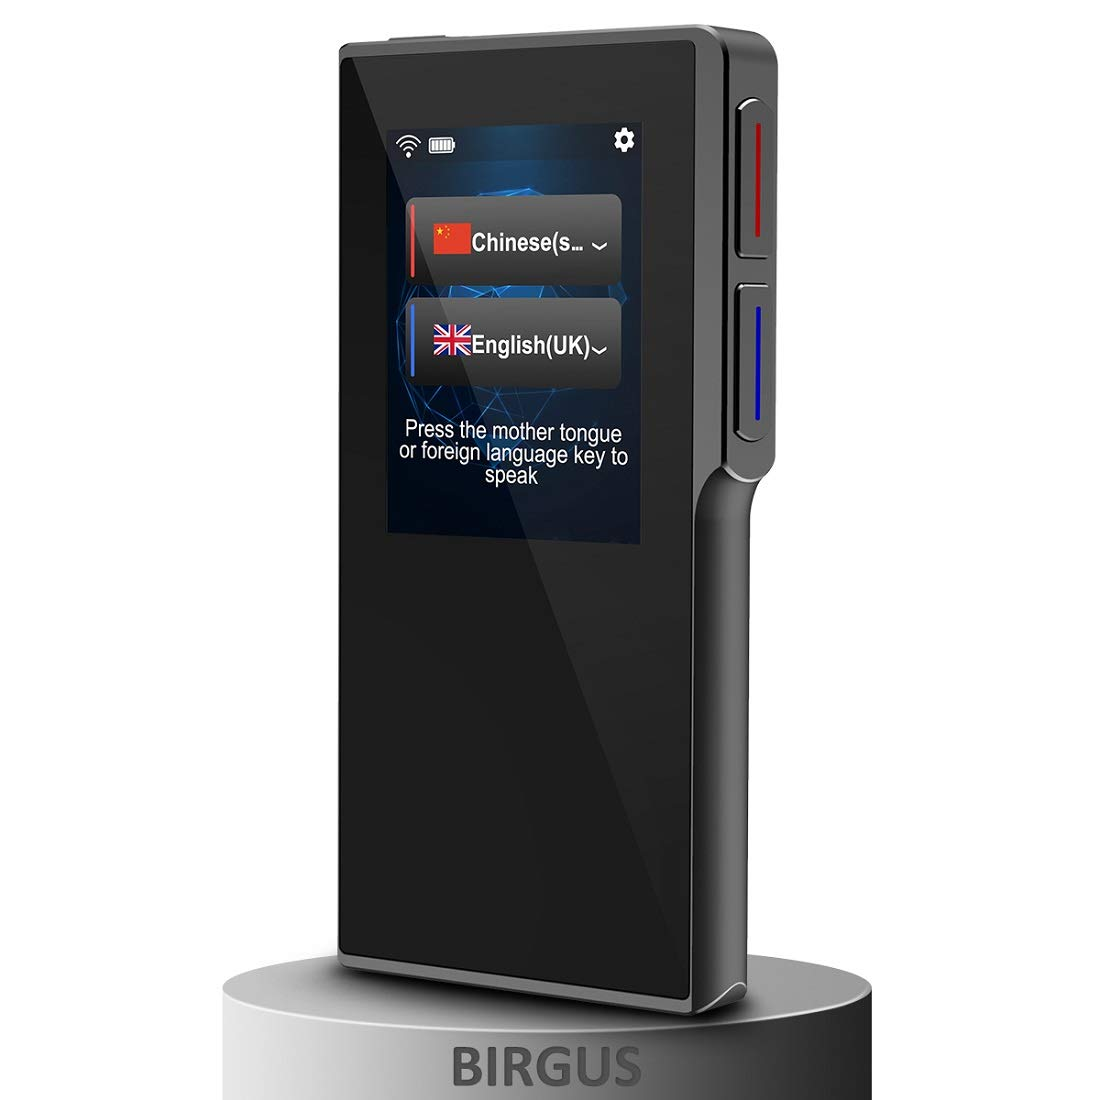 Birgus Smart Voice Translator Device with 2.4 Inch High Definition Touch Screen Support 70 Languages for Travelling Abroad Learning Shopping Business Chat Recording Translations